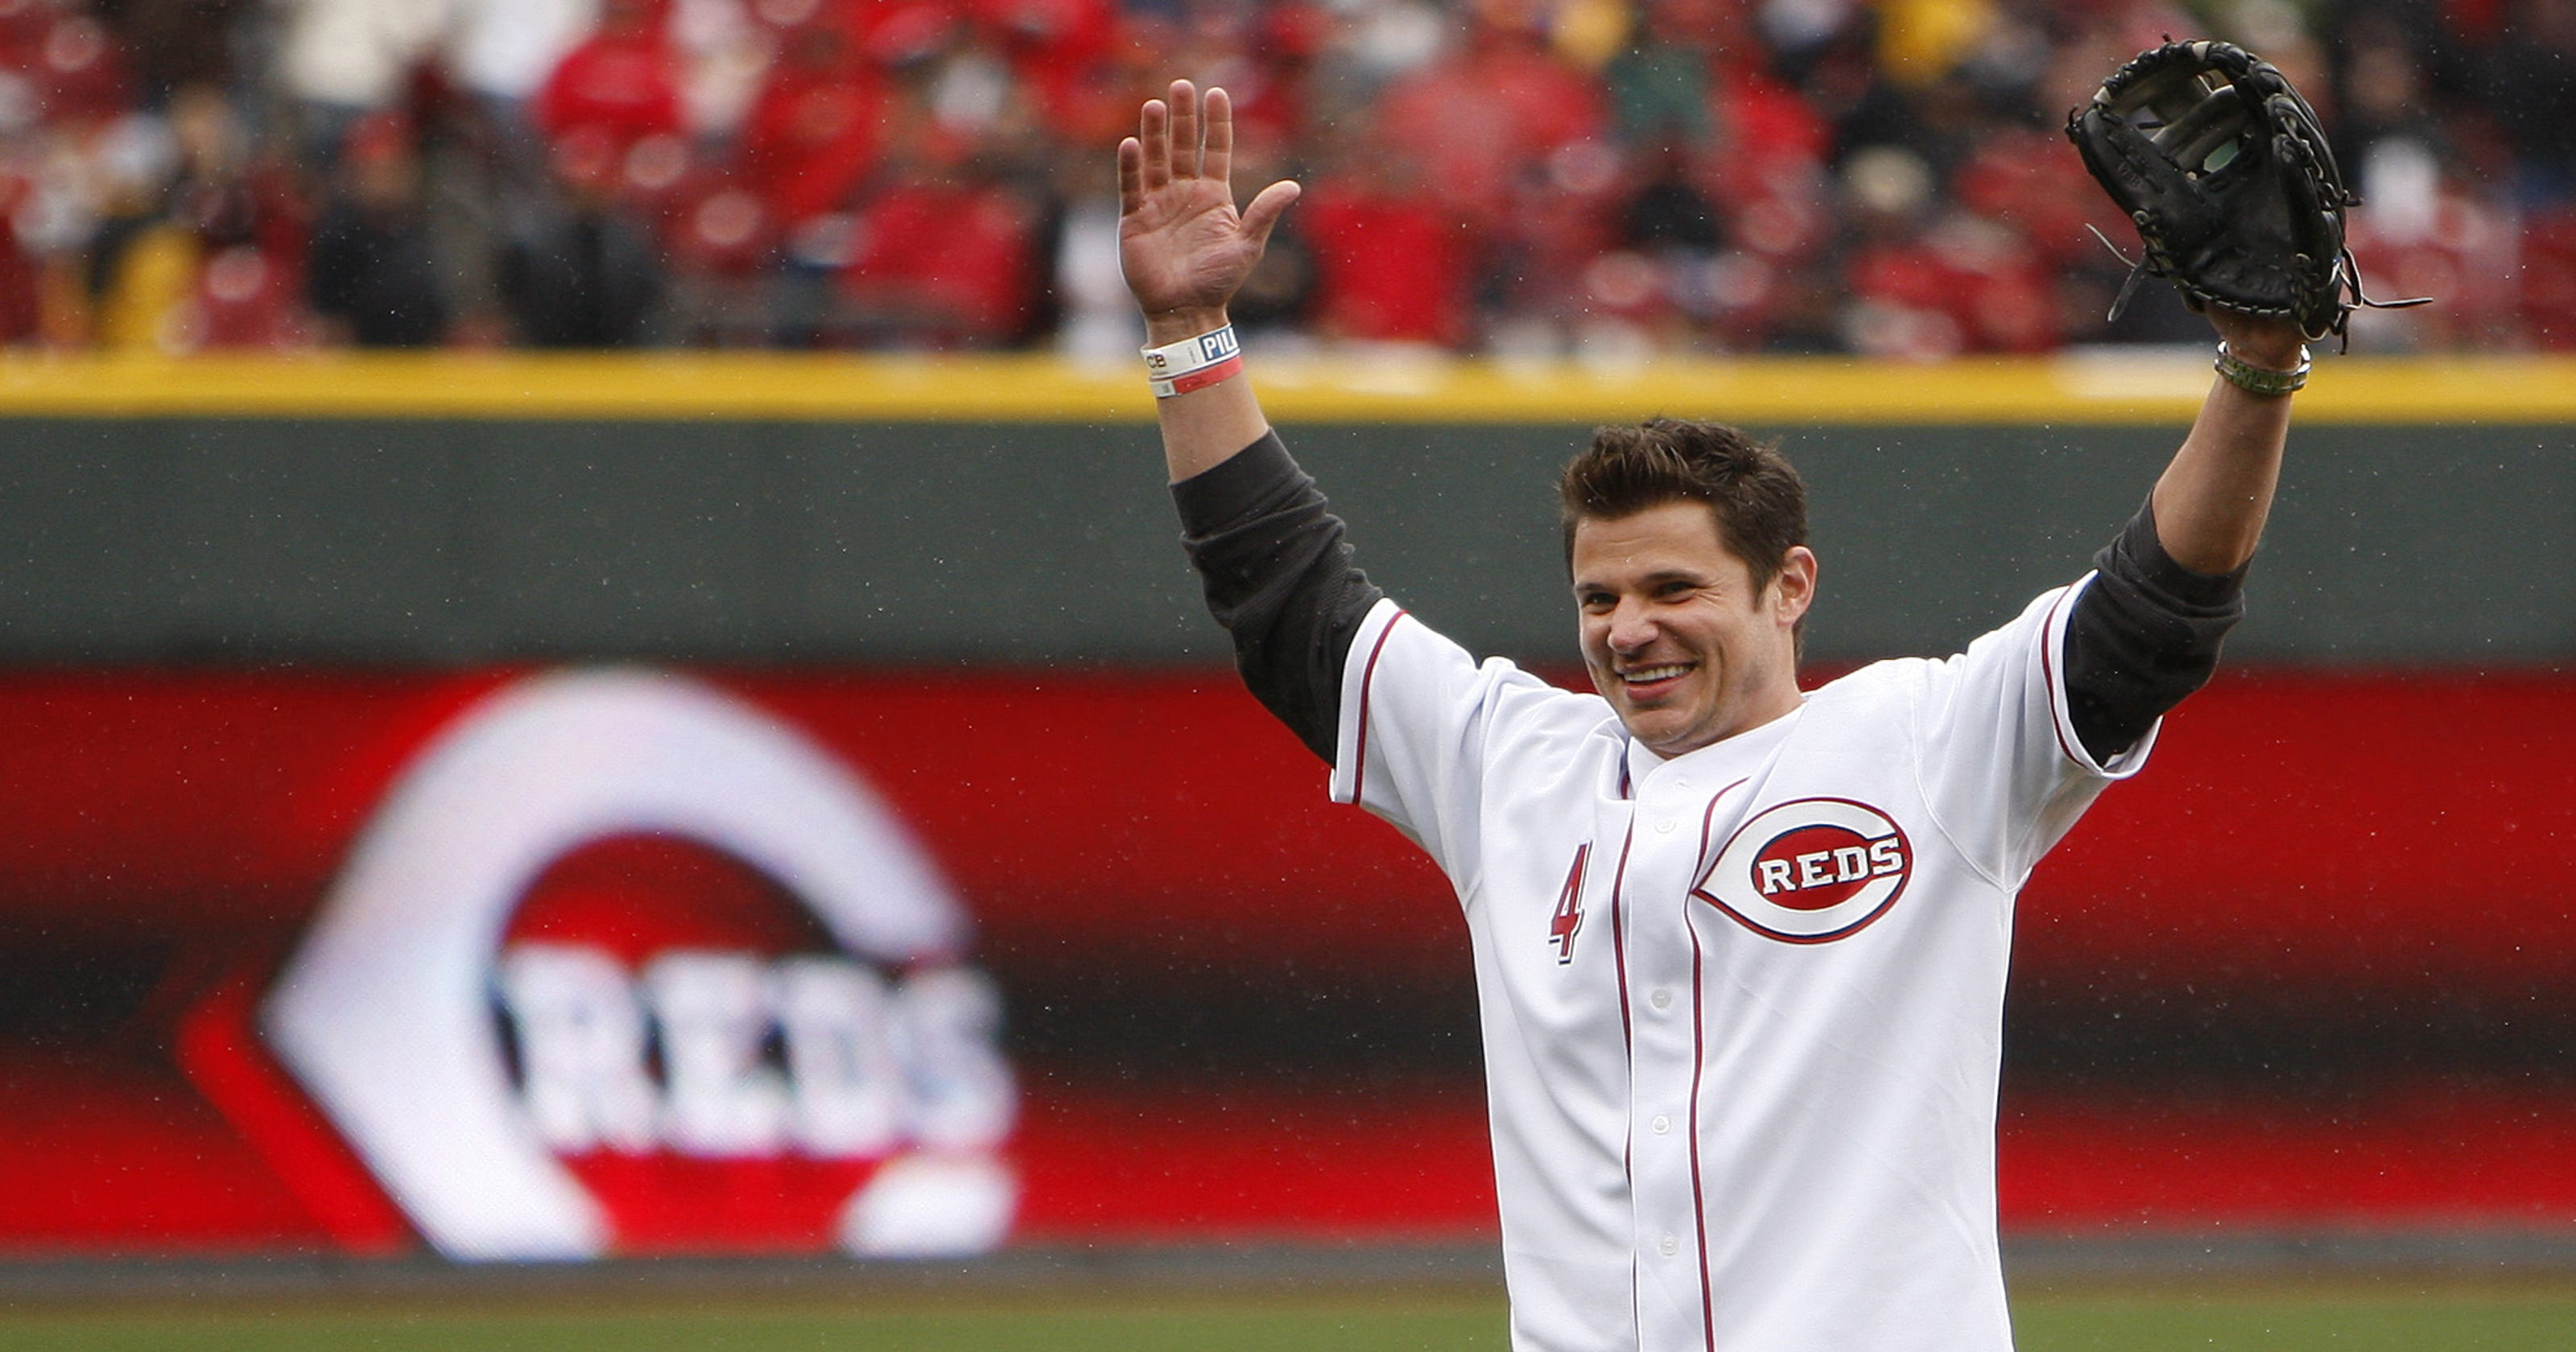 Jolly ol' Saint Nick Lachey is comin' to town with 98 Degrees